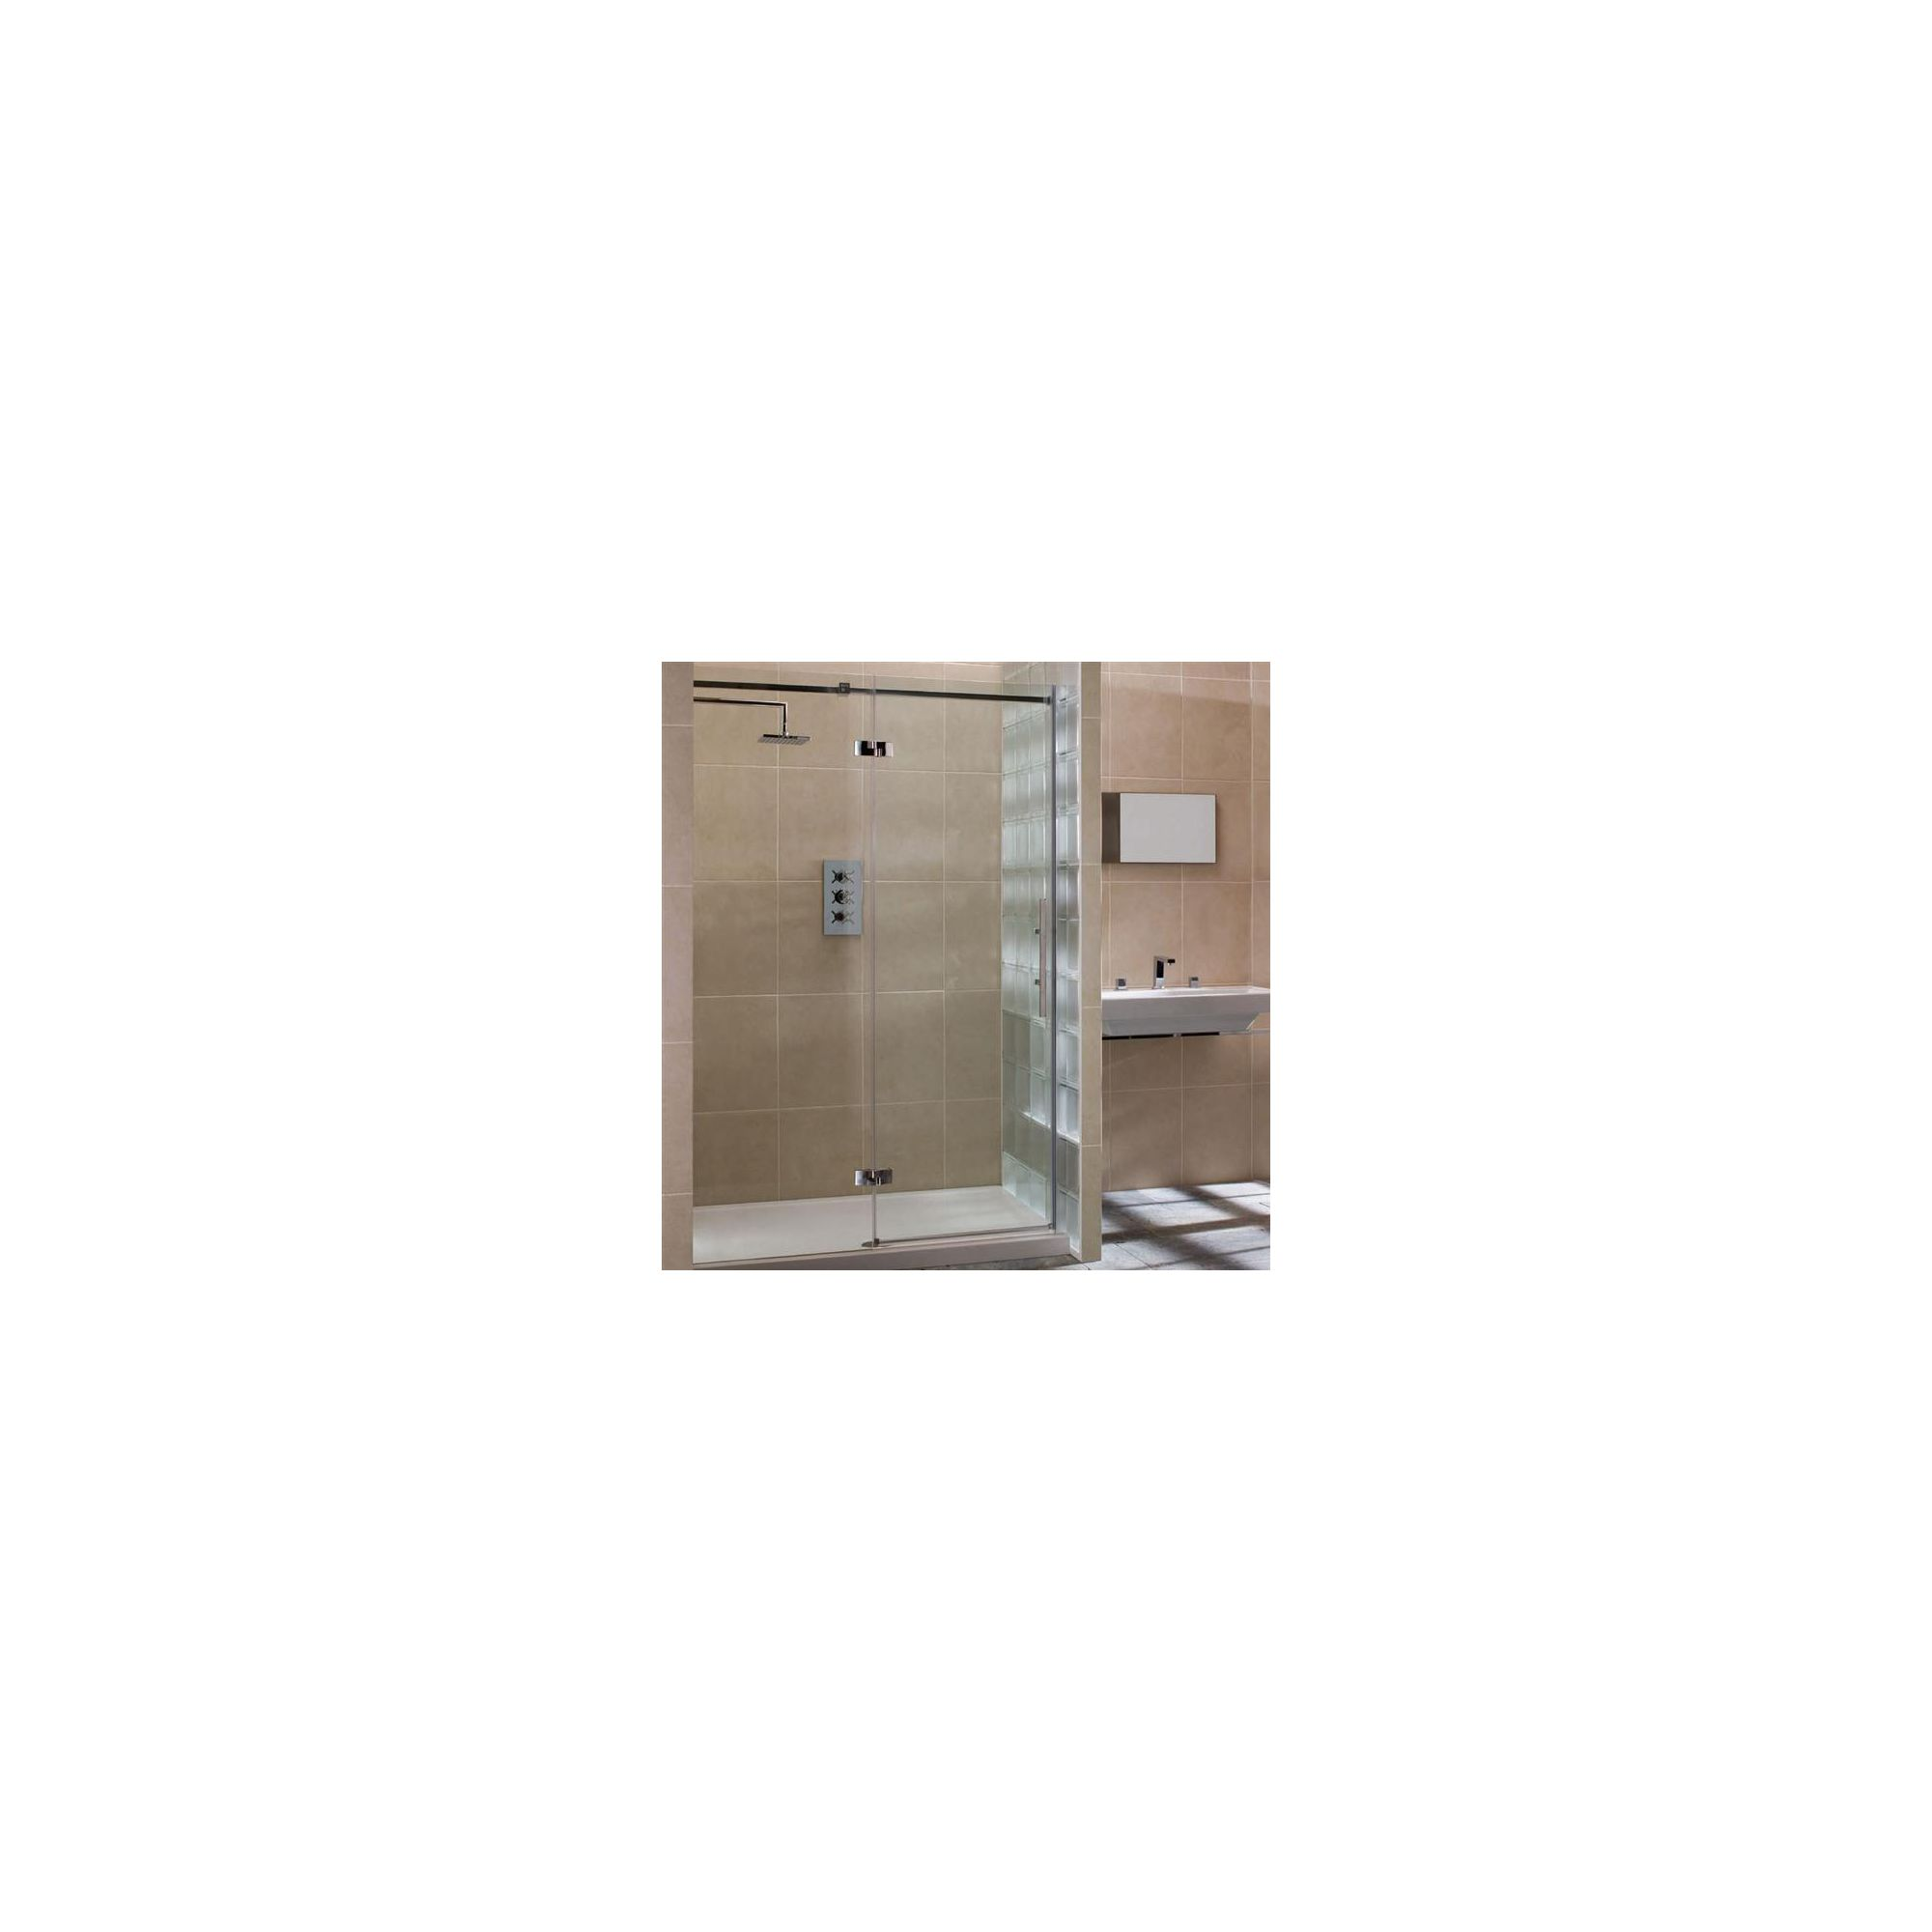 Merlyn Vivid Nine Hinged Door Alcove Shower Enclosure with Inline Panel, 1700mm x 800mm, Left Handed, Low Profile Tray, 8mm Glass at Tesco Direct